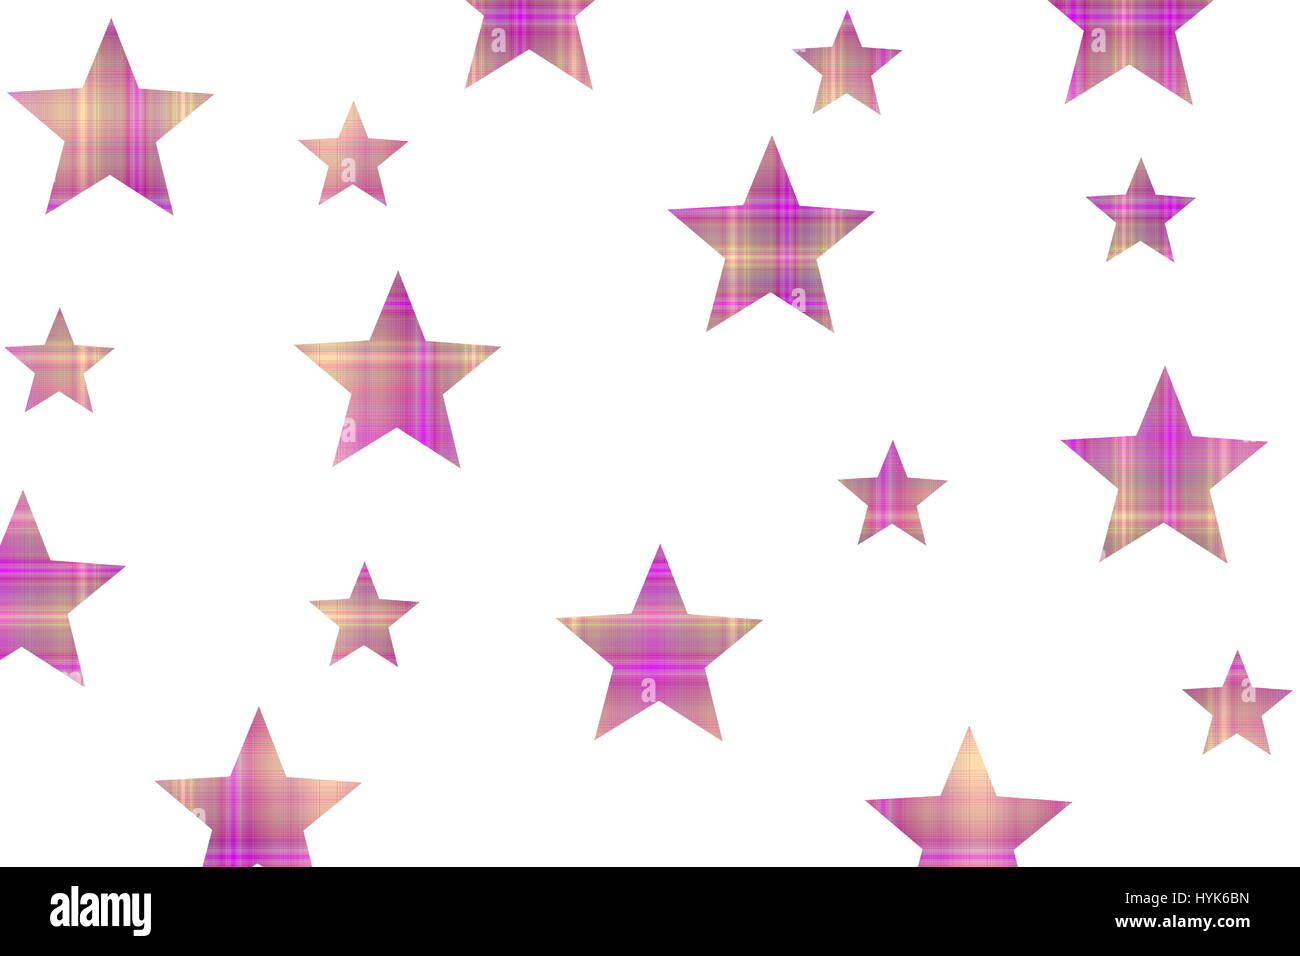 Checkered stars on a white background Stock Photo